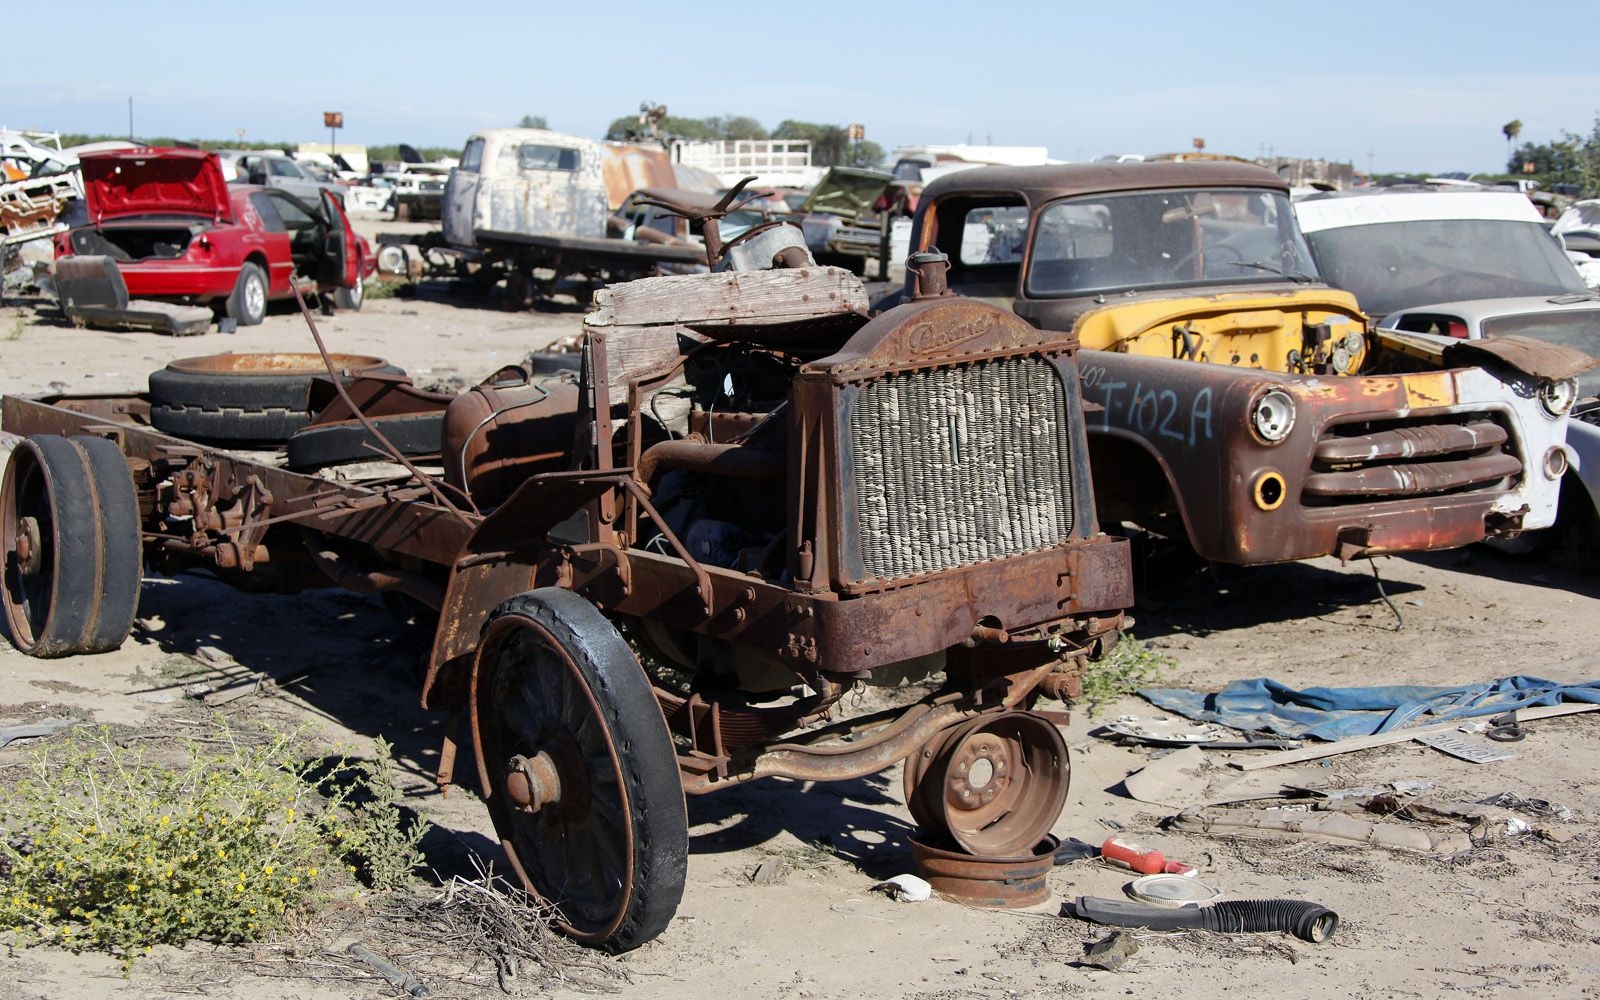 Junkyard Vintage Cars Turners Auto Wrecking Fresno